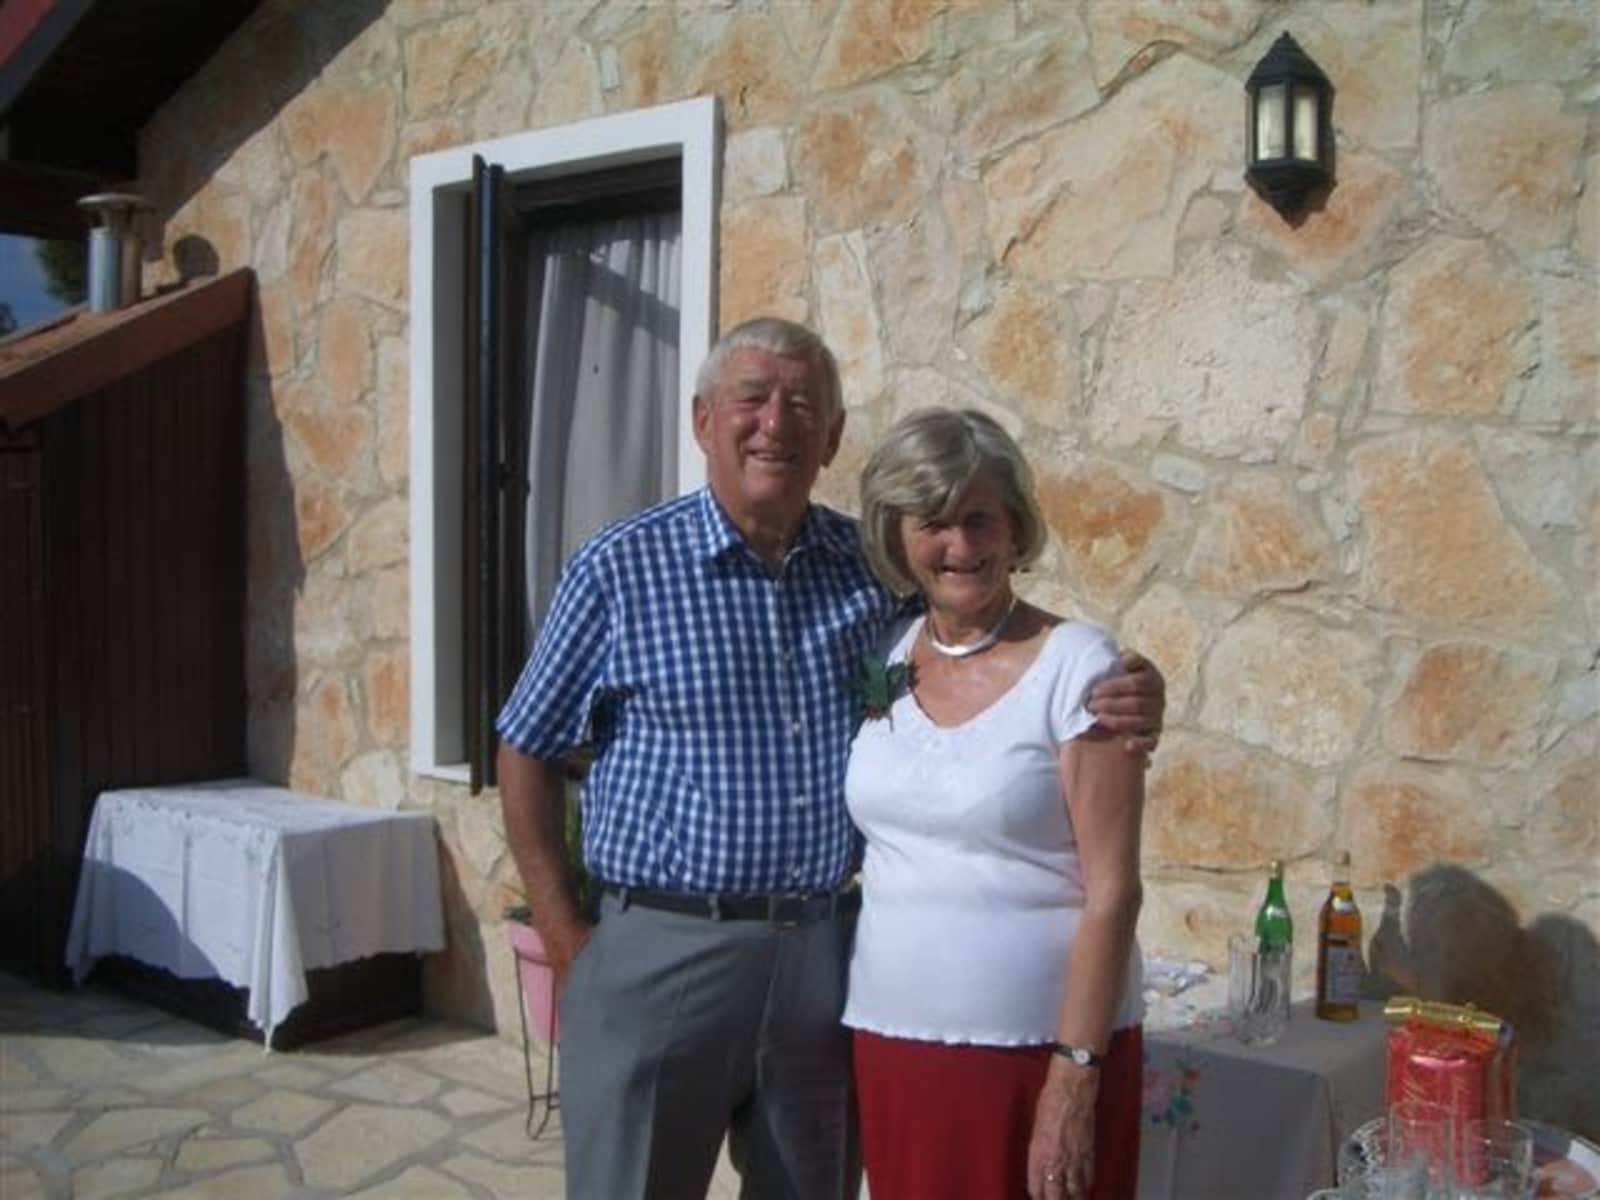 Mary & Michael from Çağlayan, Cyprus